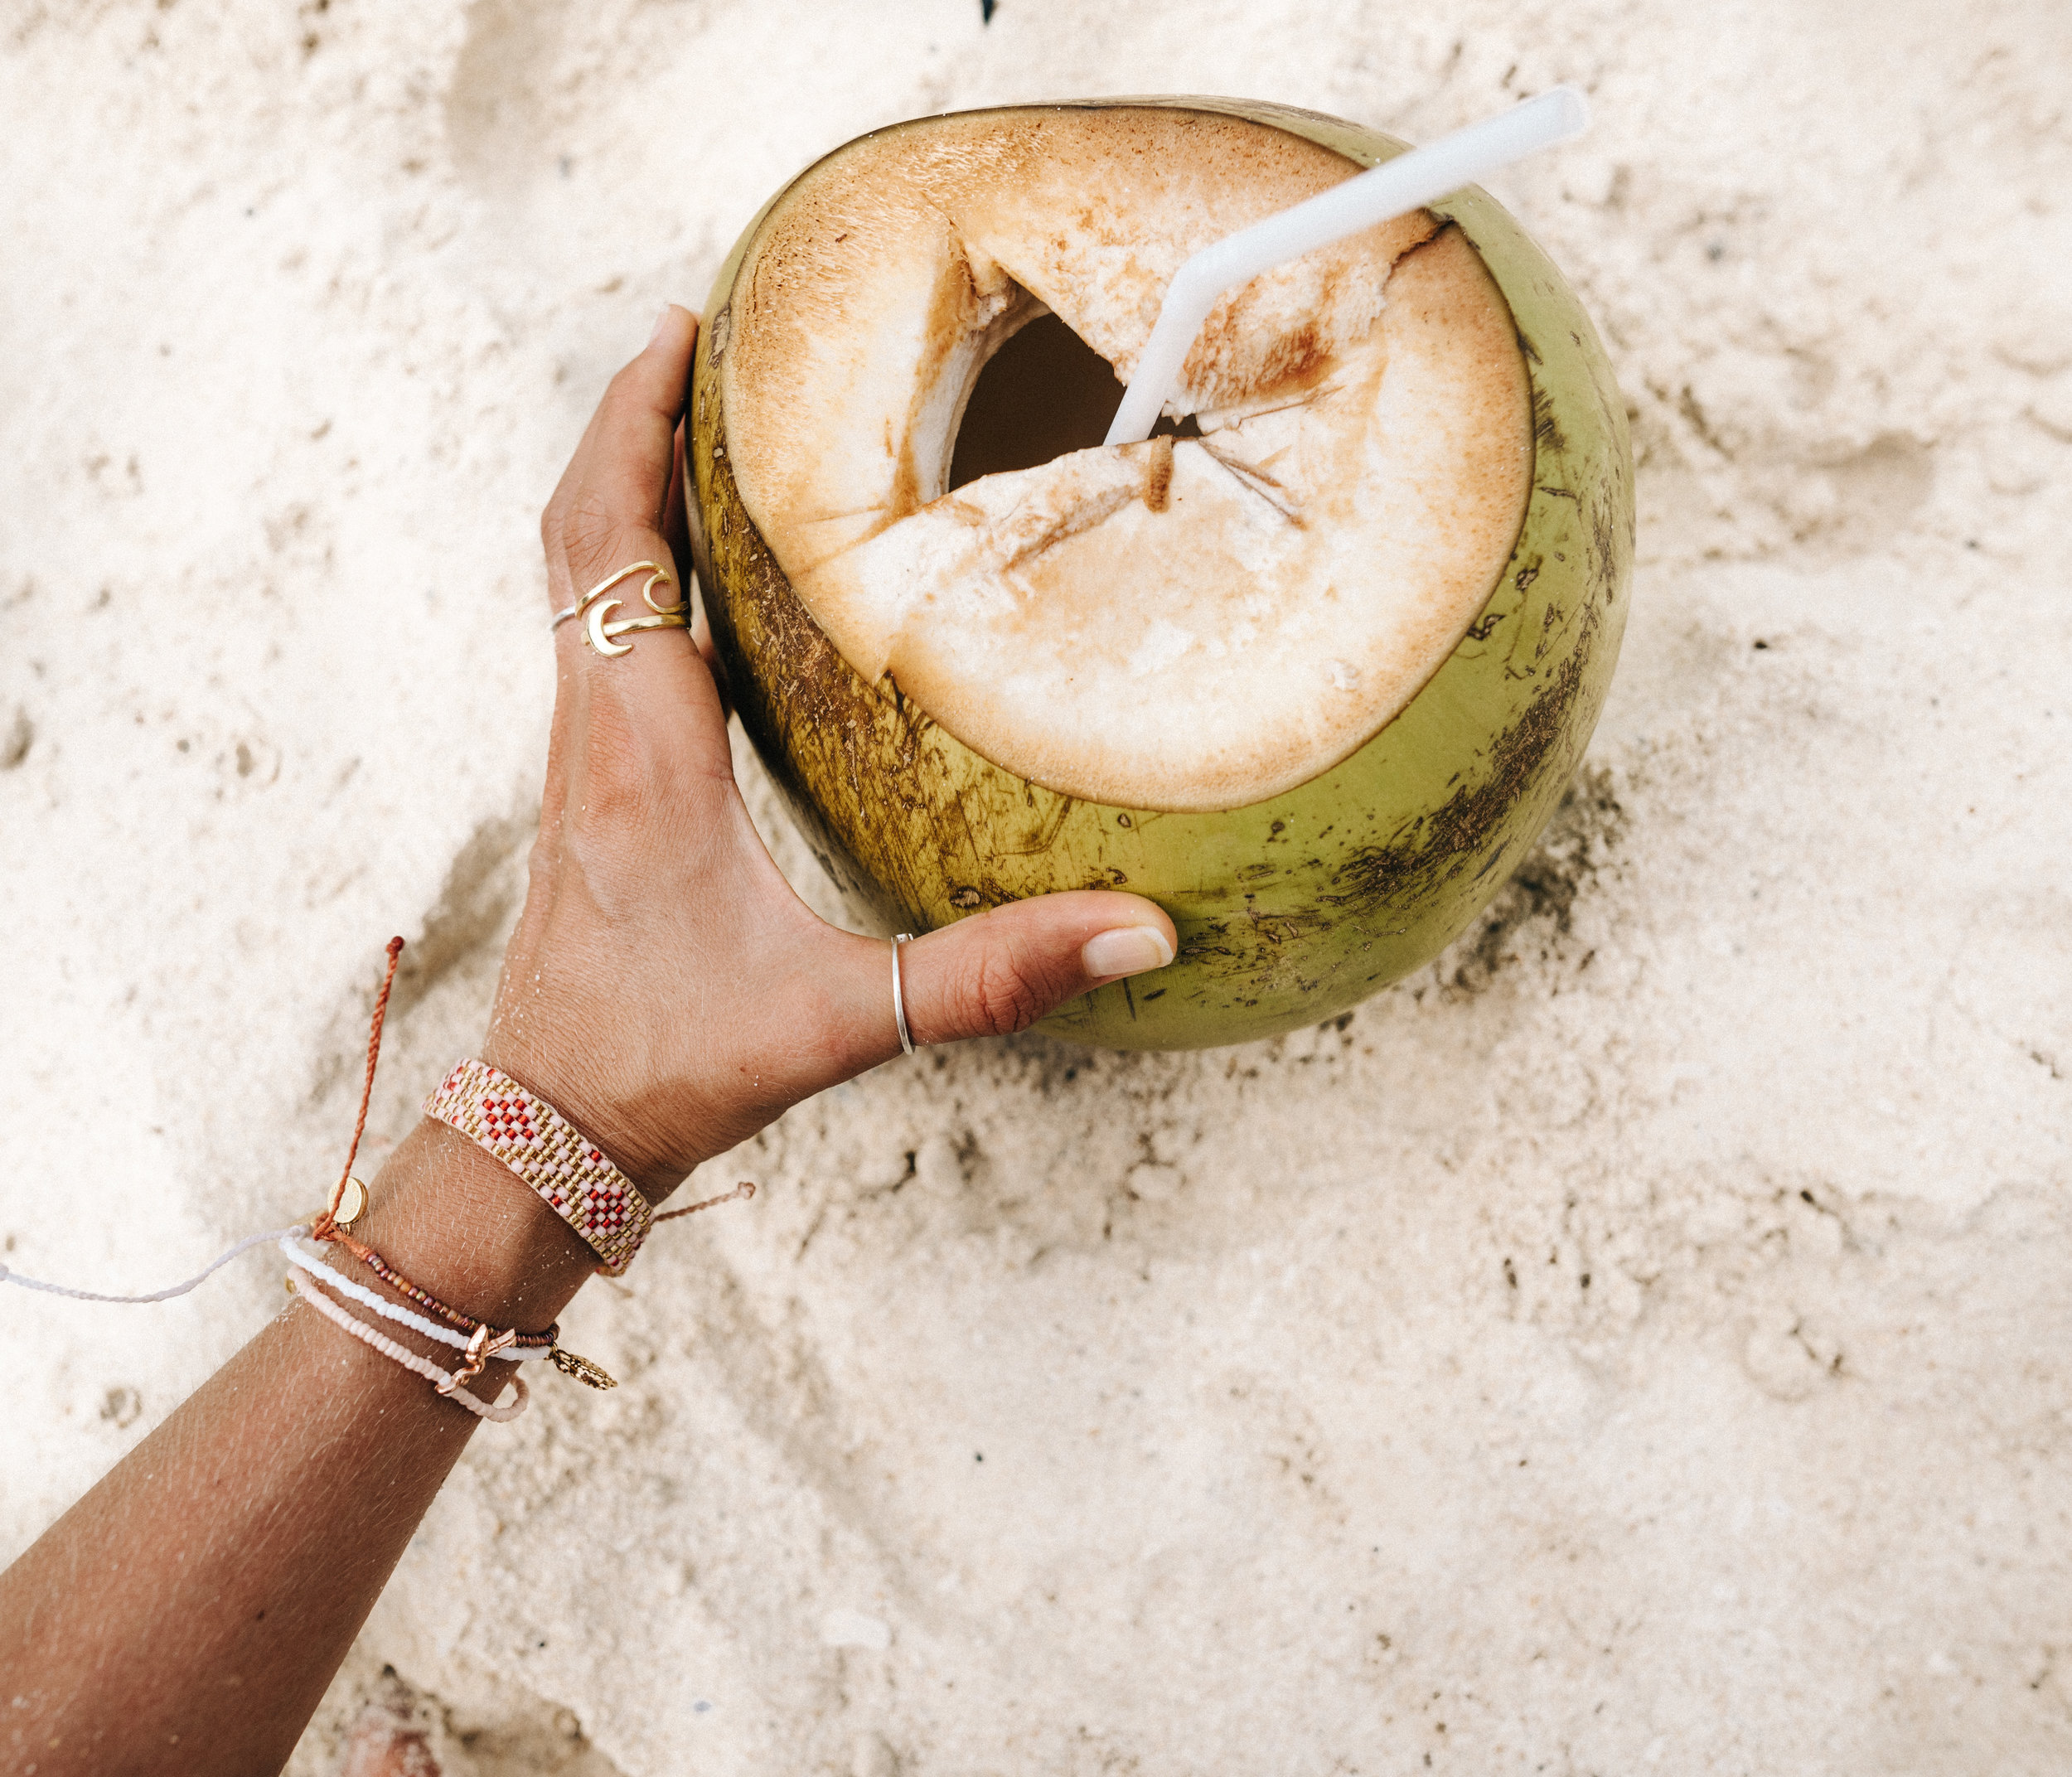 Cold coconuts to hydrate in the sun